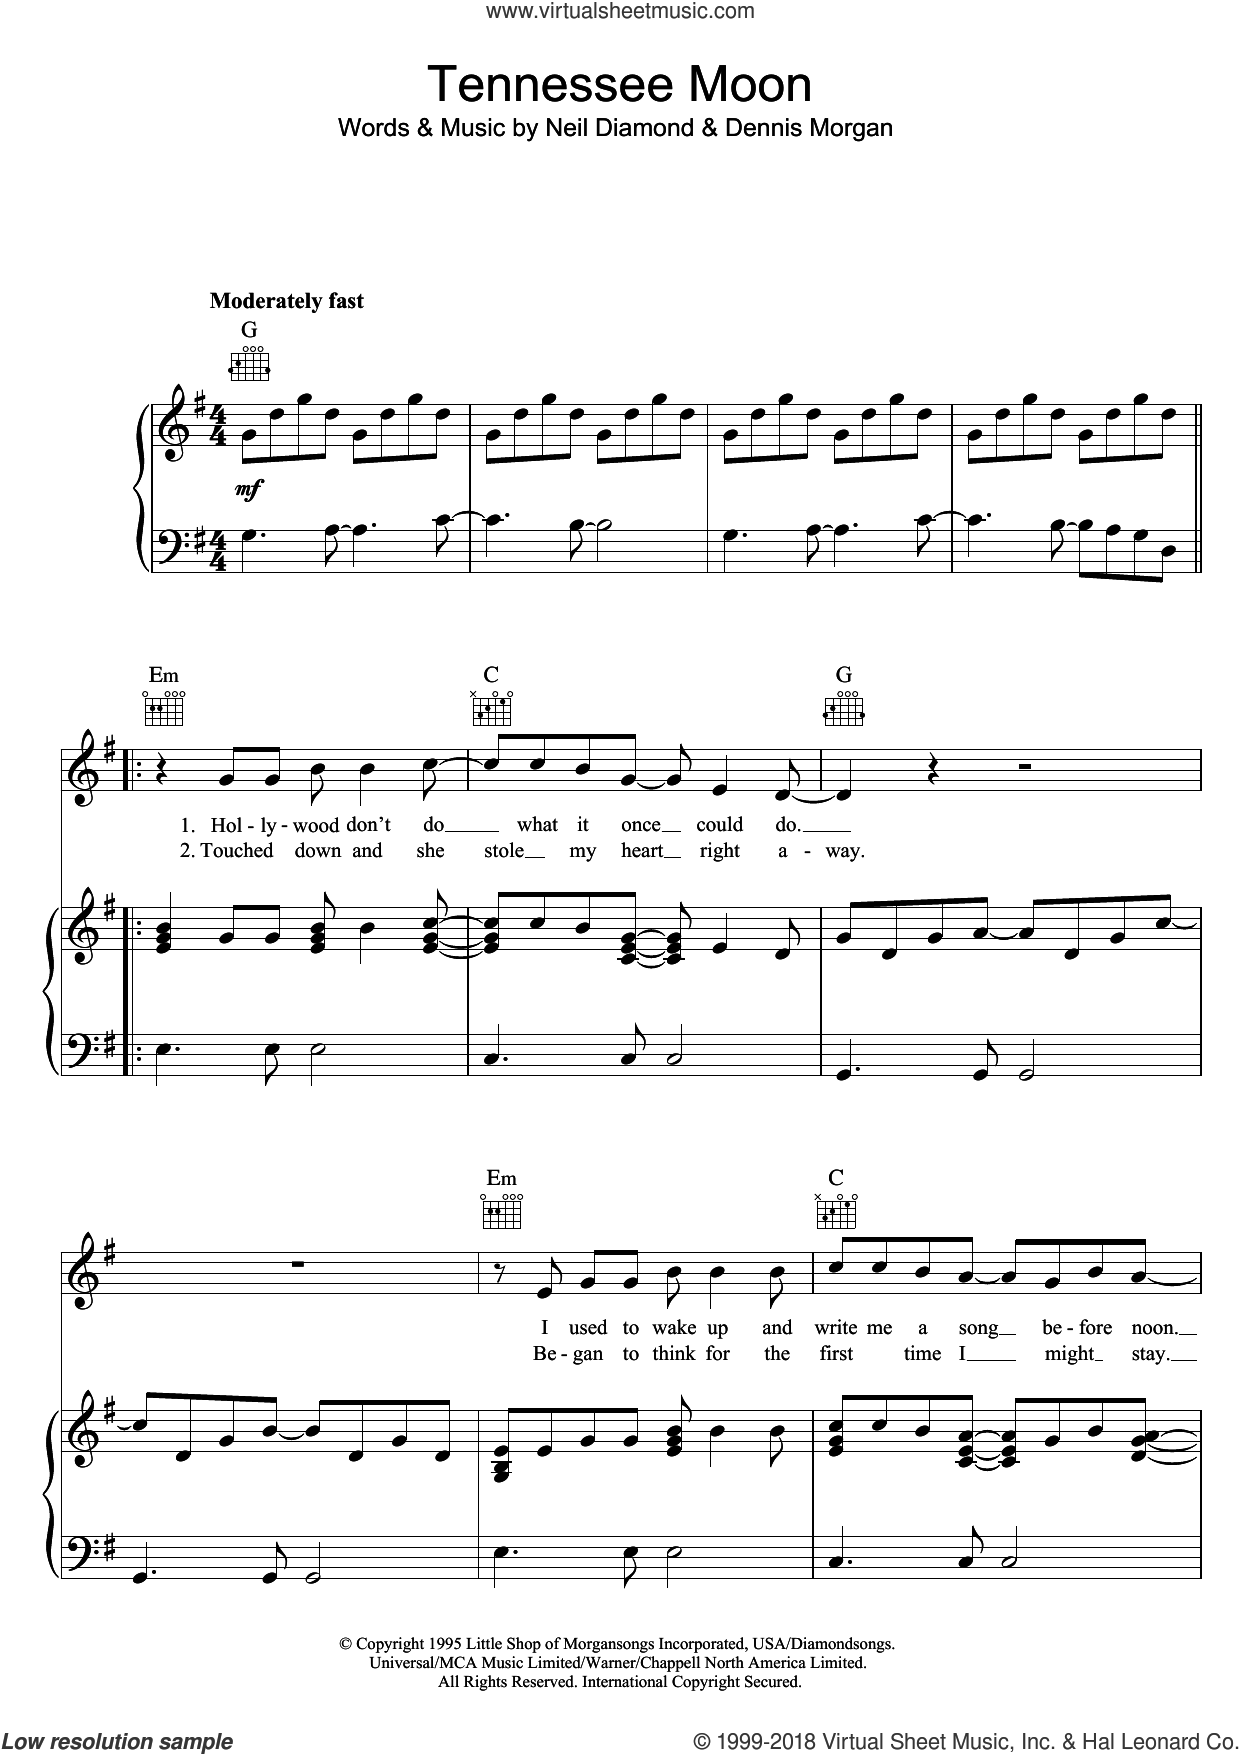 Tennessee Moon sheet music for voice, piano or guitar by Neil Diamond and Dennis Morgan, intermediate skill level